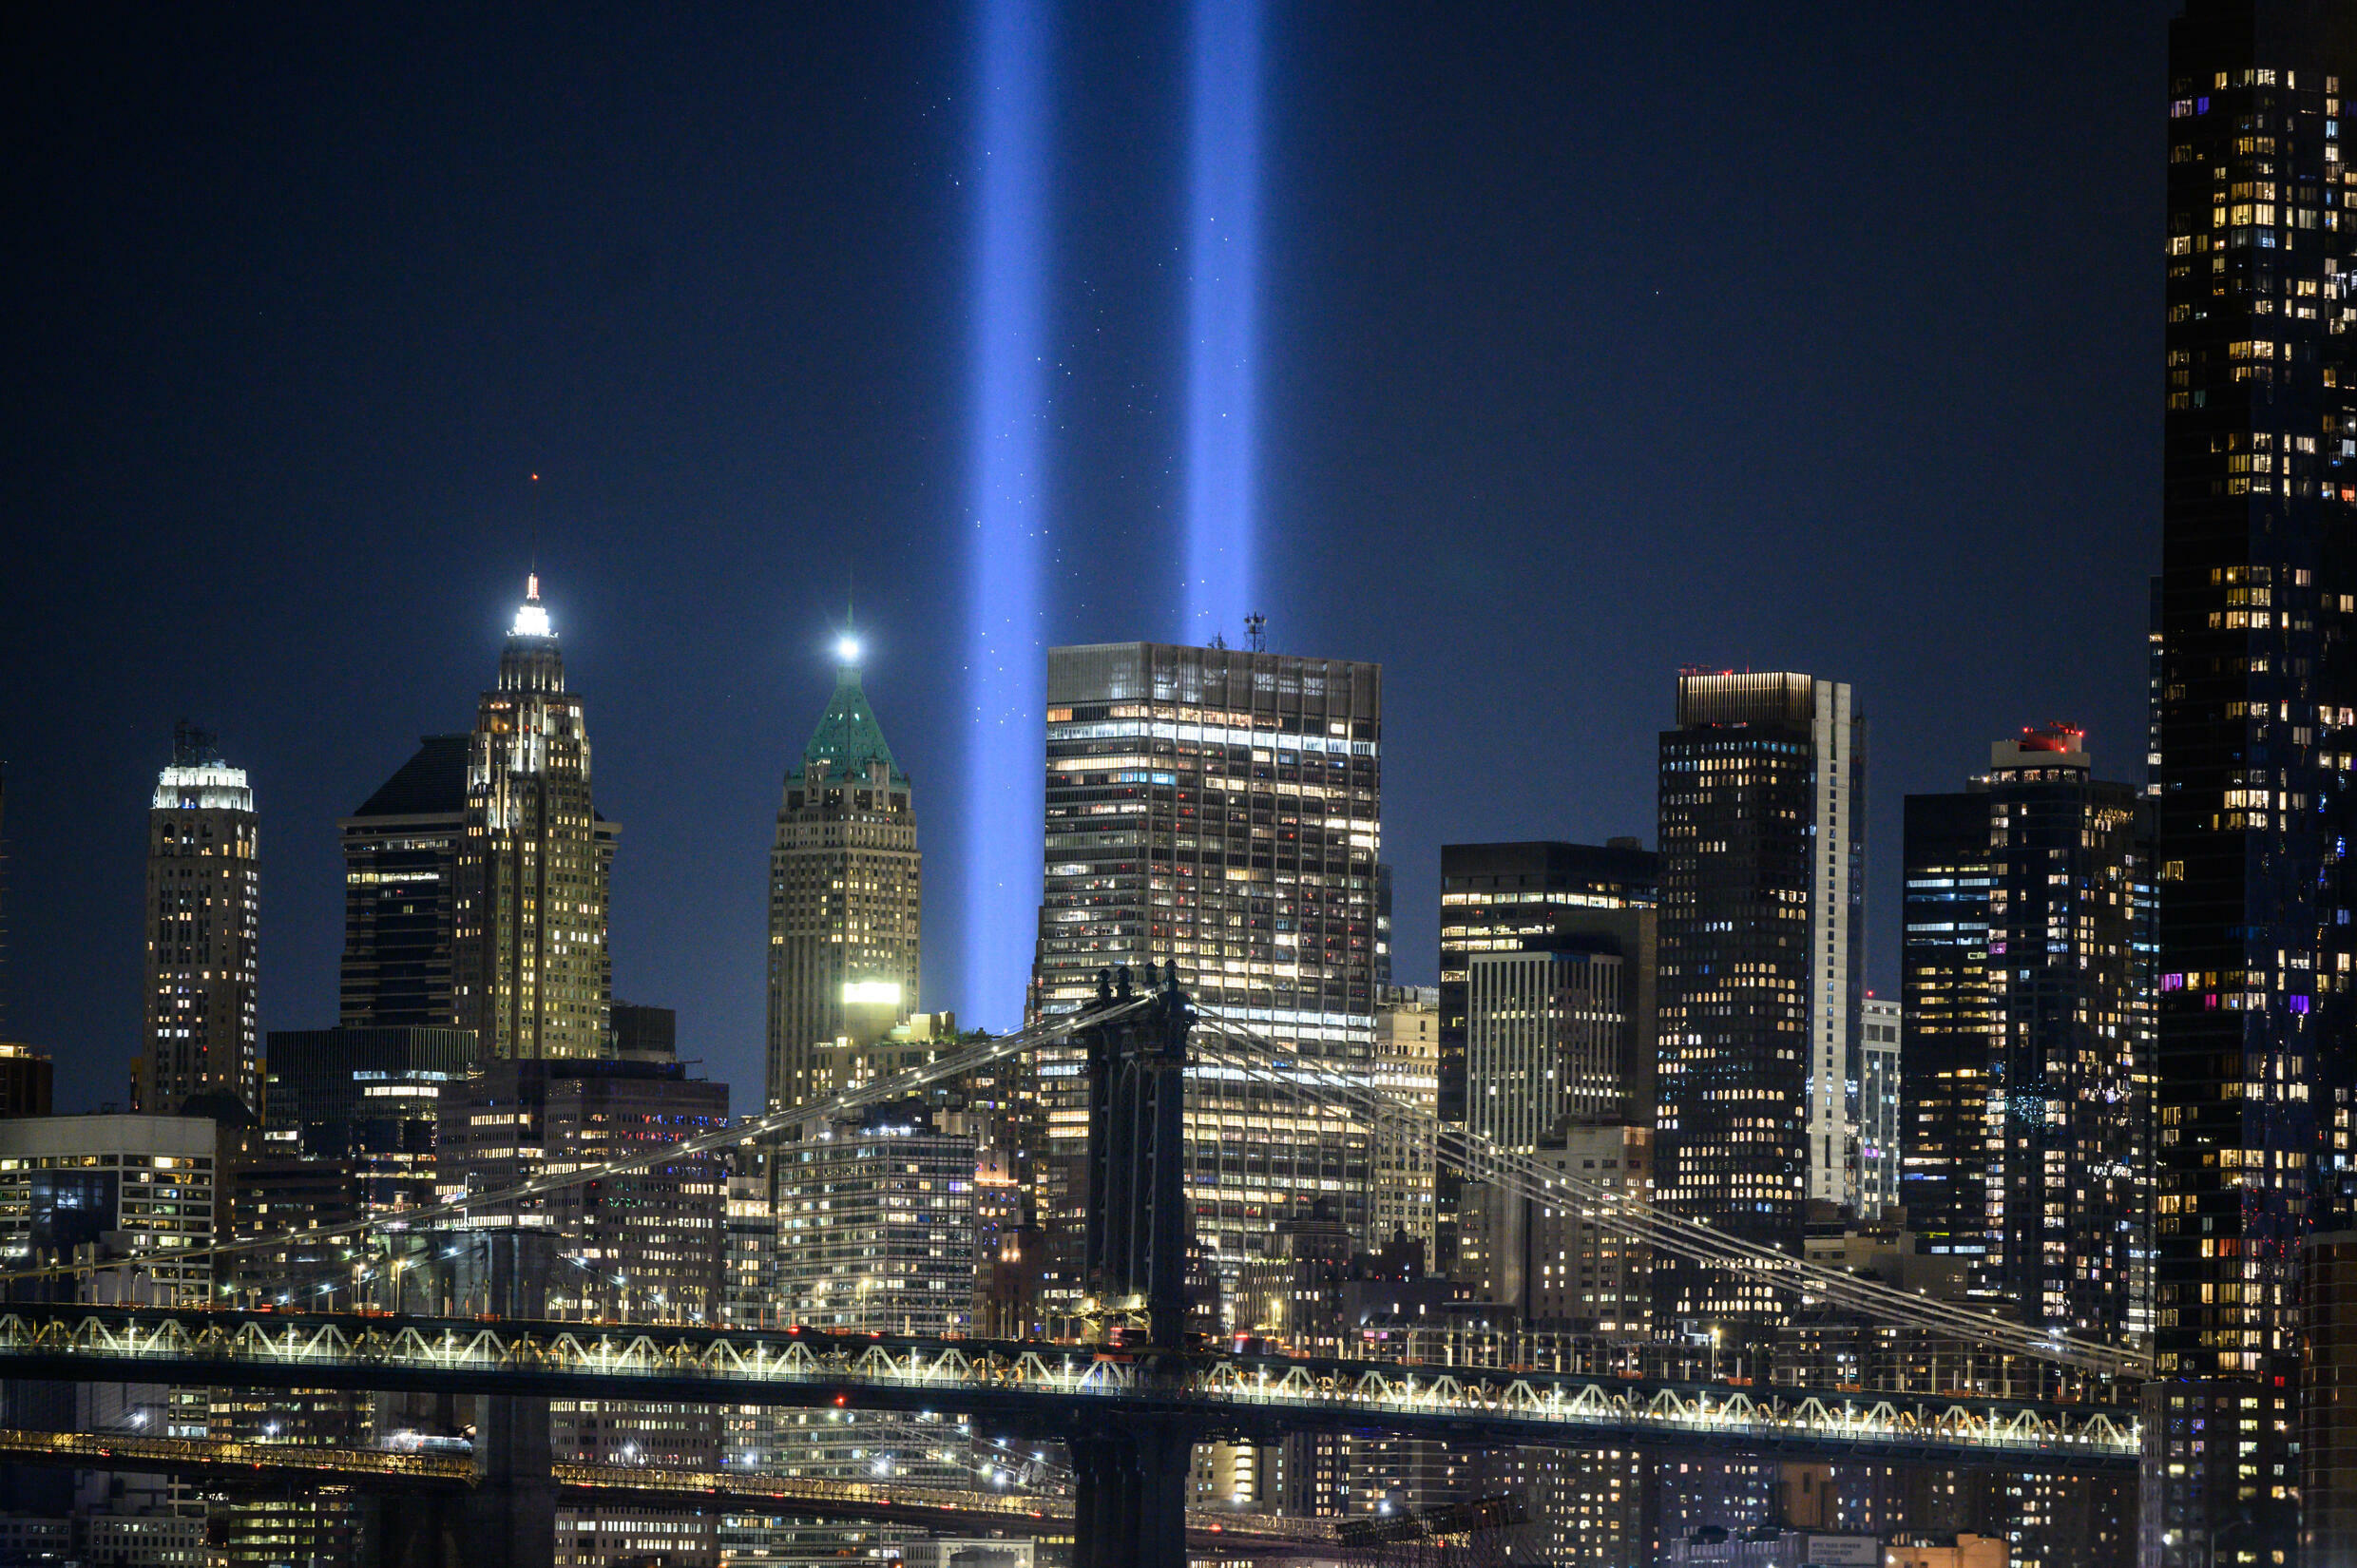 The New York skyline with the 'Tribute in Light' installation commemorating the 9/11 attacks on their 20th anniversary